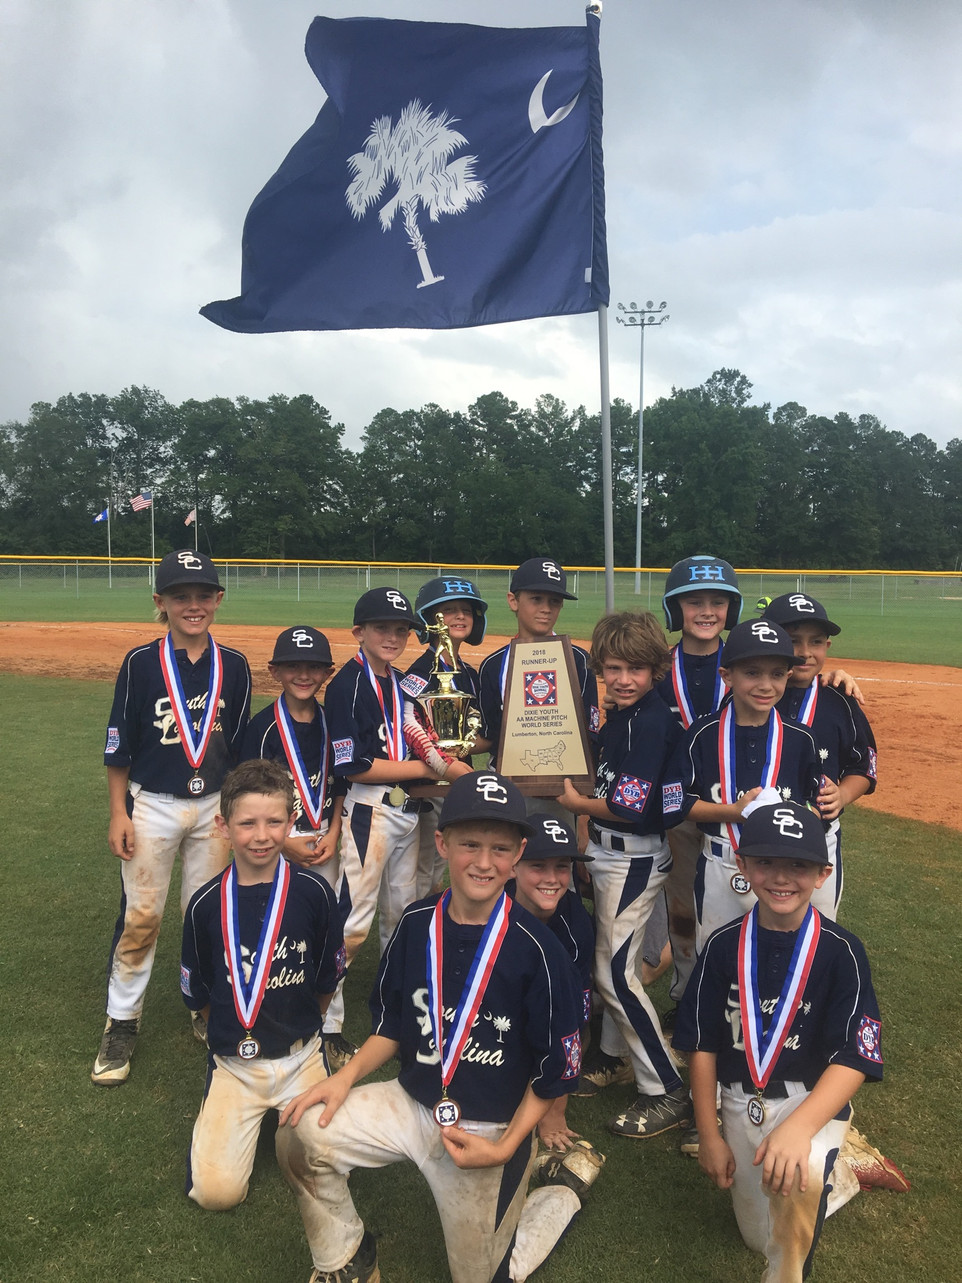 CONGRATS to the Hilton Head 8U Machine Pitch Baseball Team!